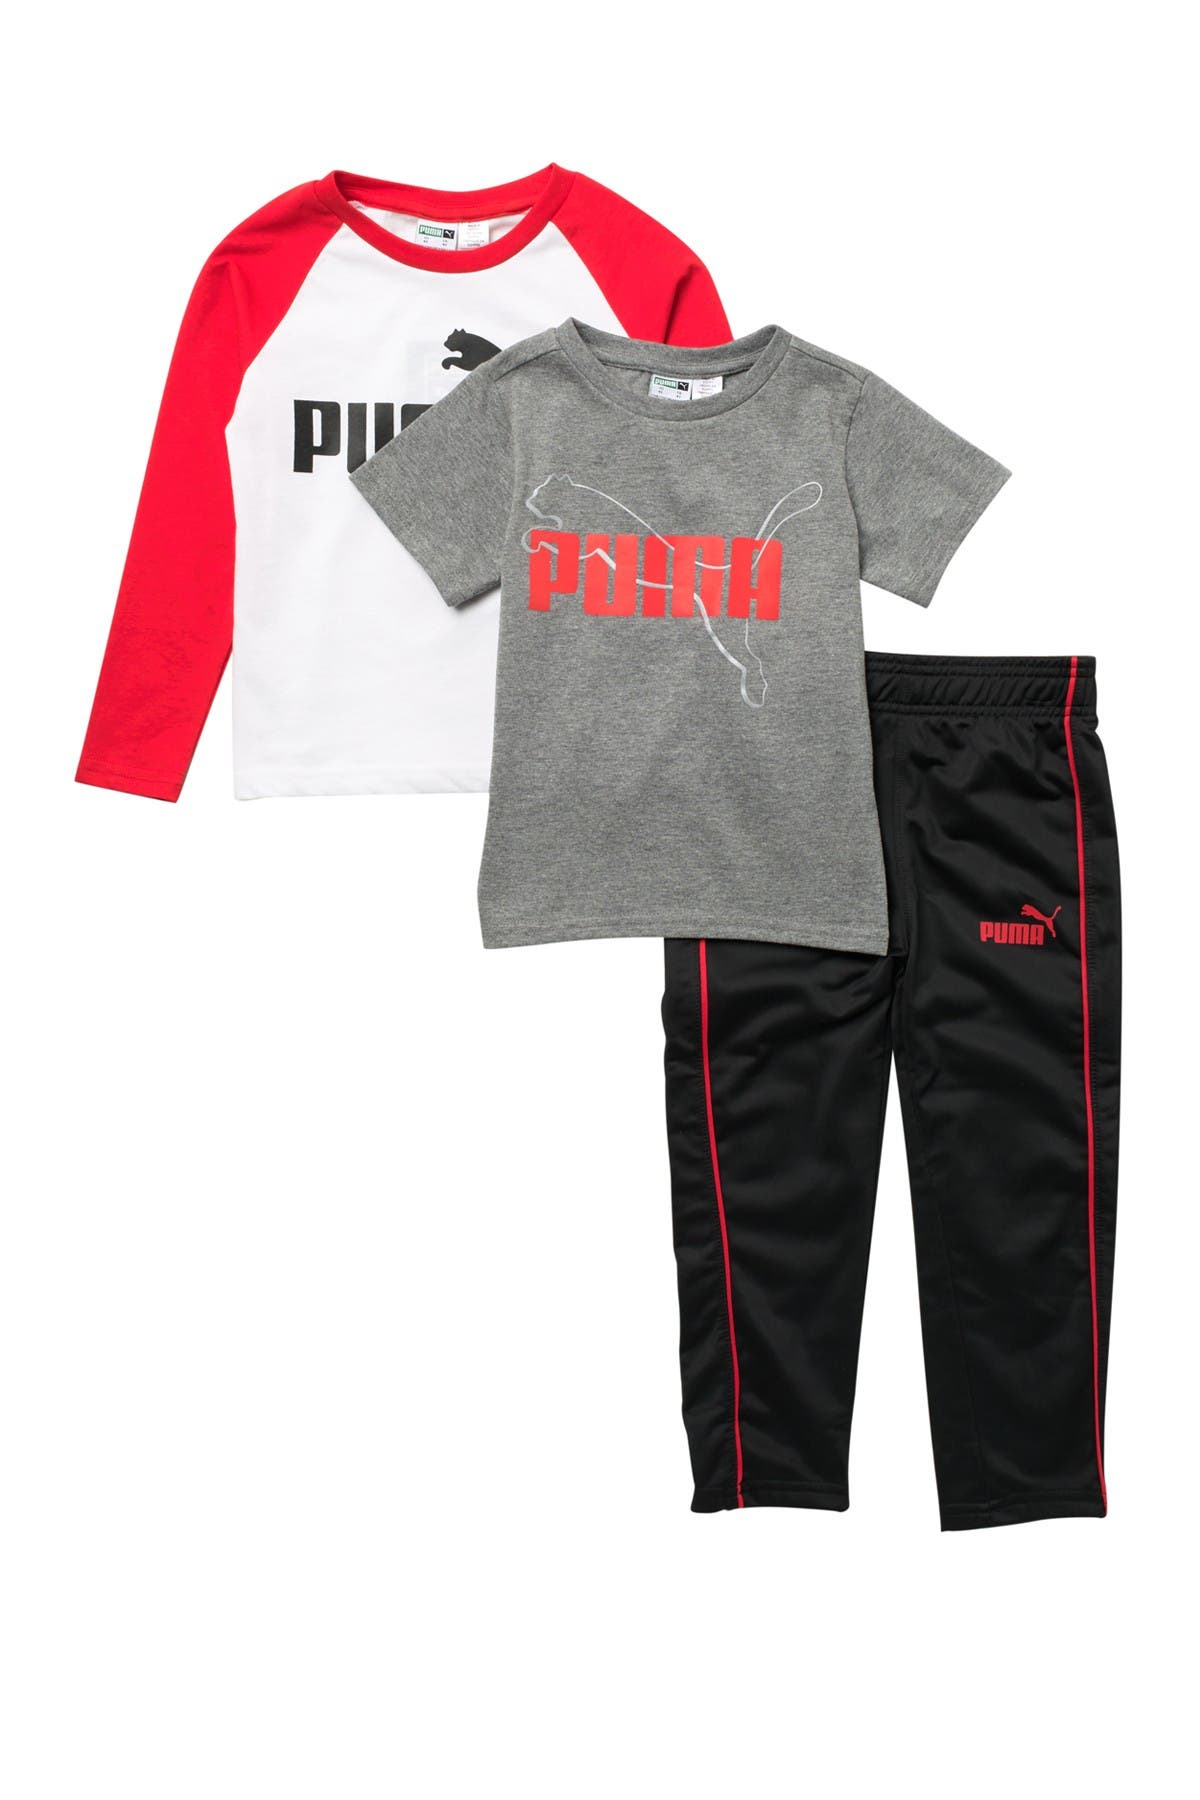 Image of PUMA Jersey 3-Piece T-Shirt & Pants Set